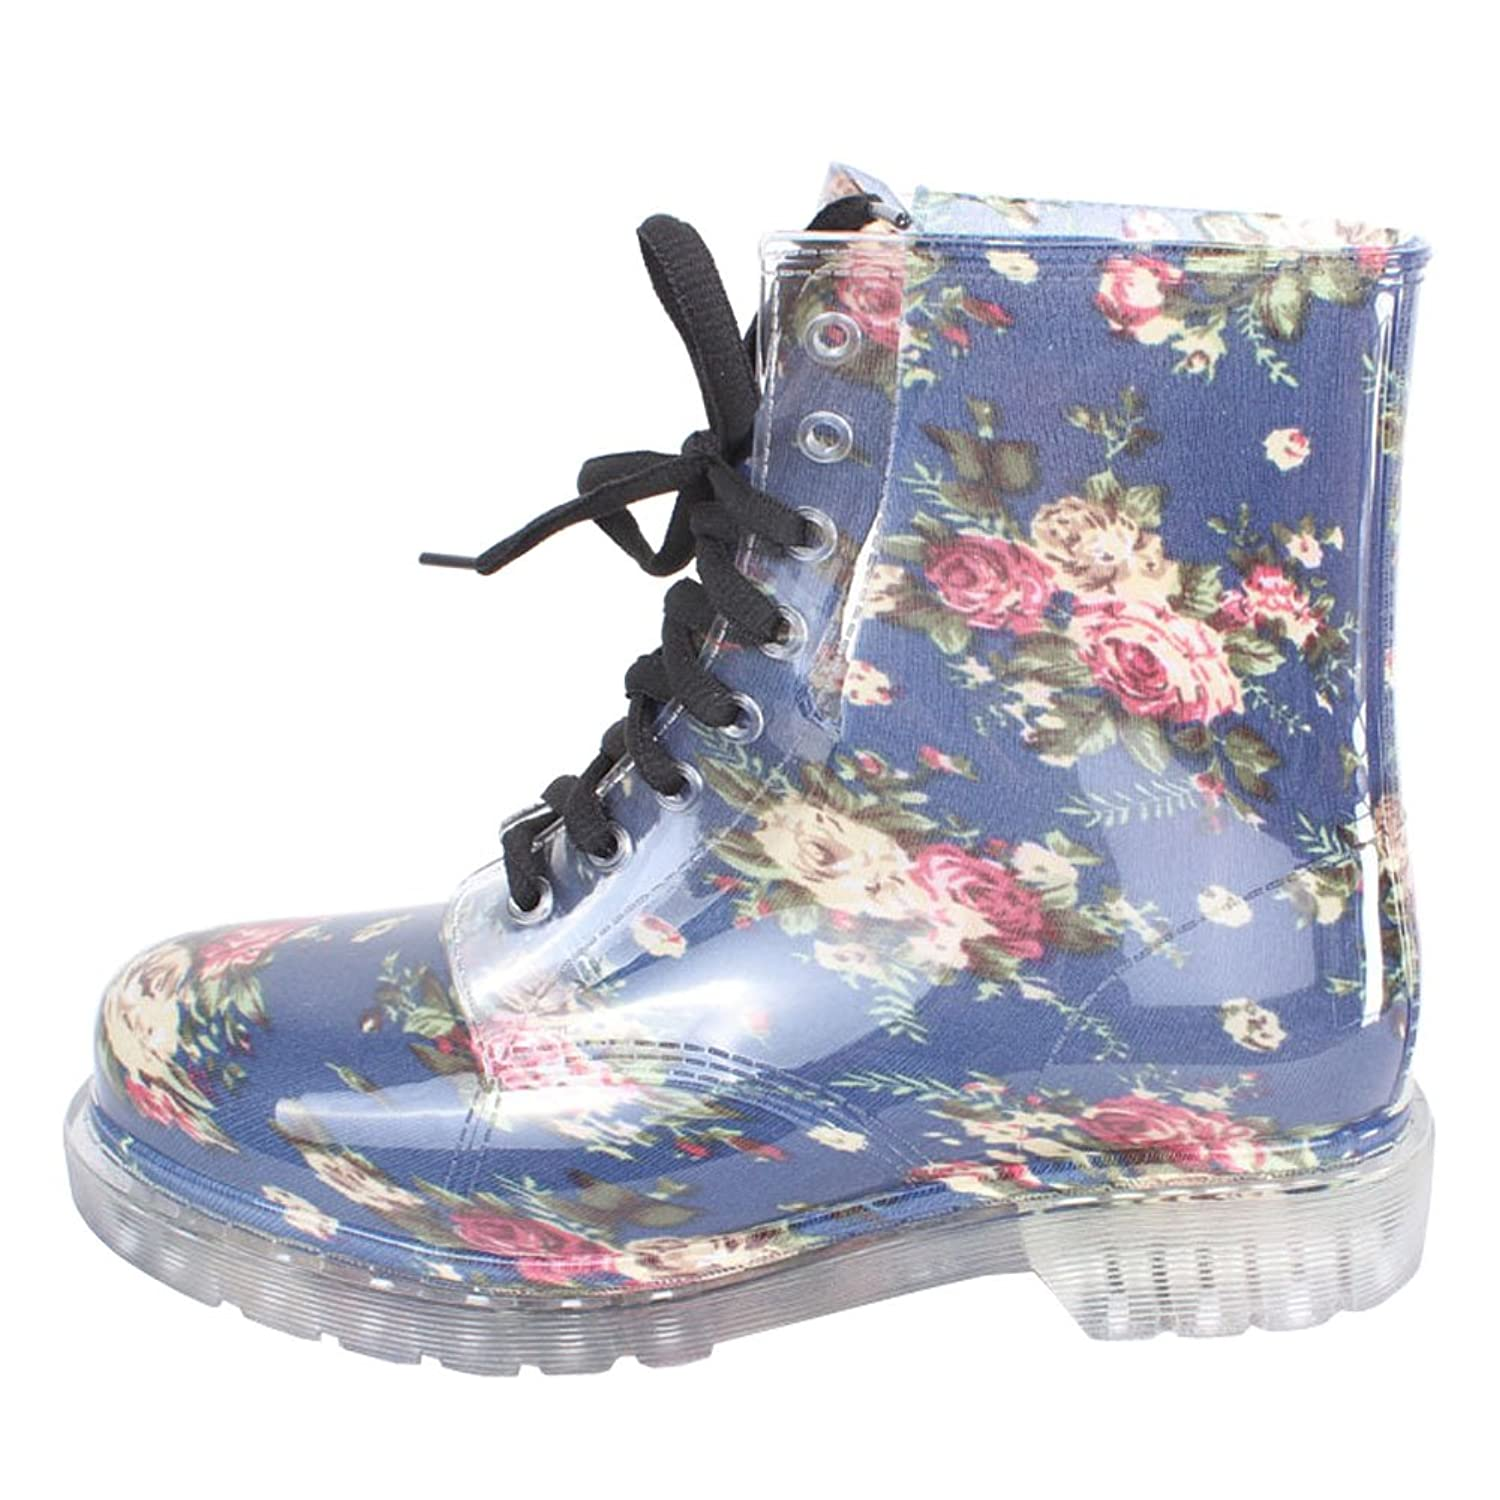 Women's Cute Print Waterproof Lace-up Ankle Rain Boot